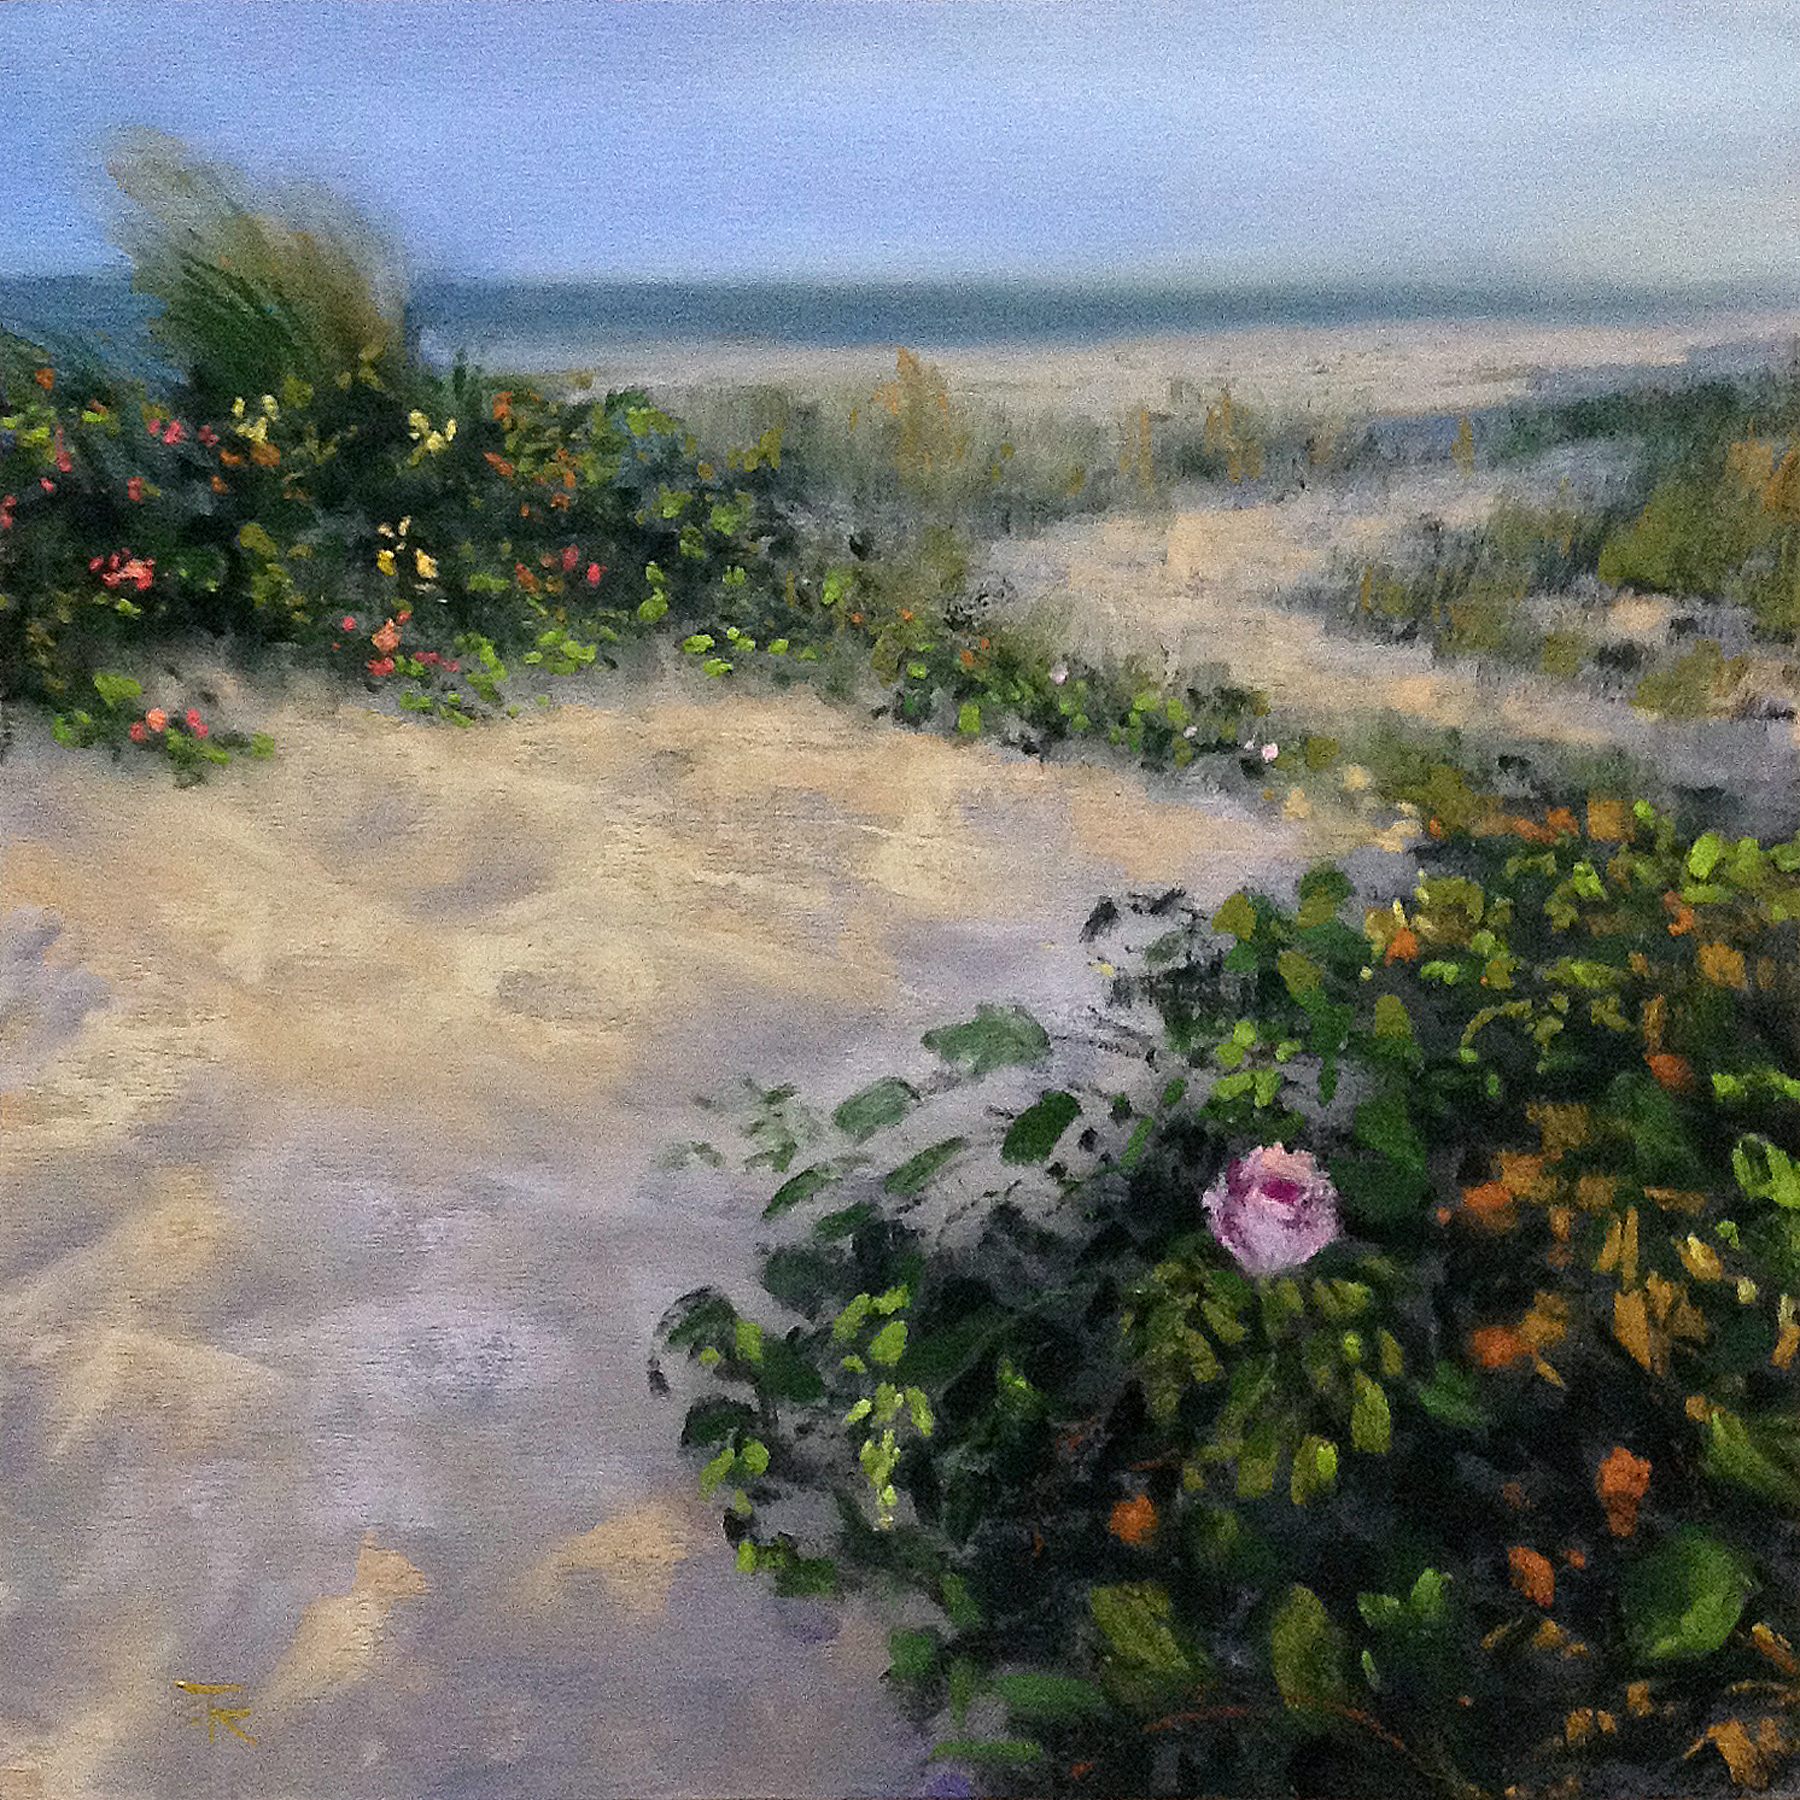 Tatiana Roulin, Cape Cod Glory, SOLD